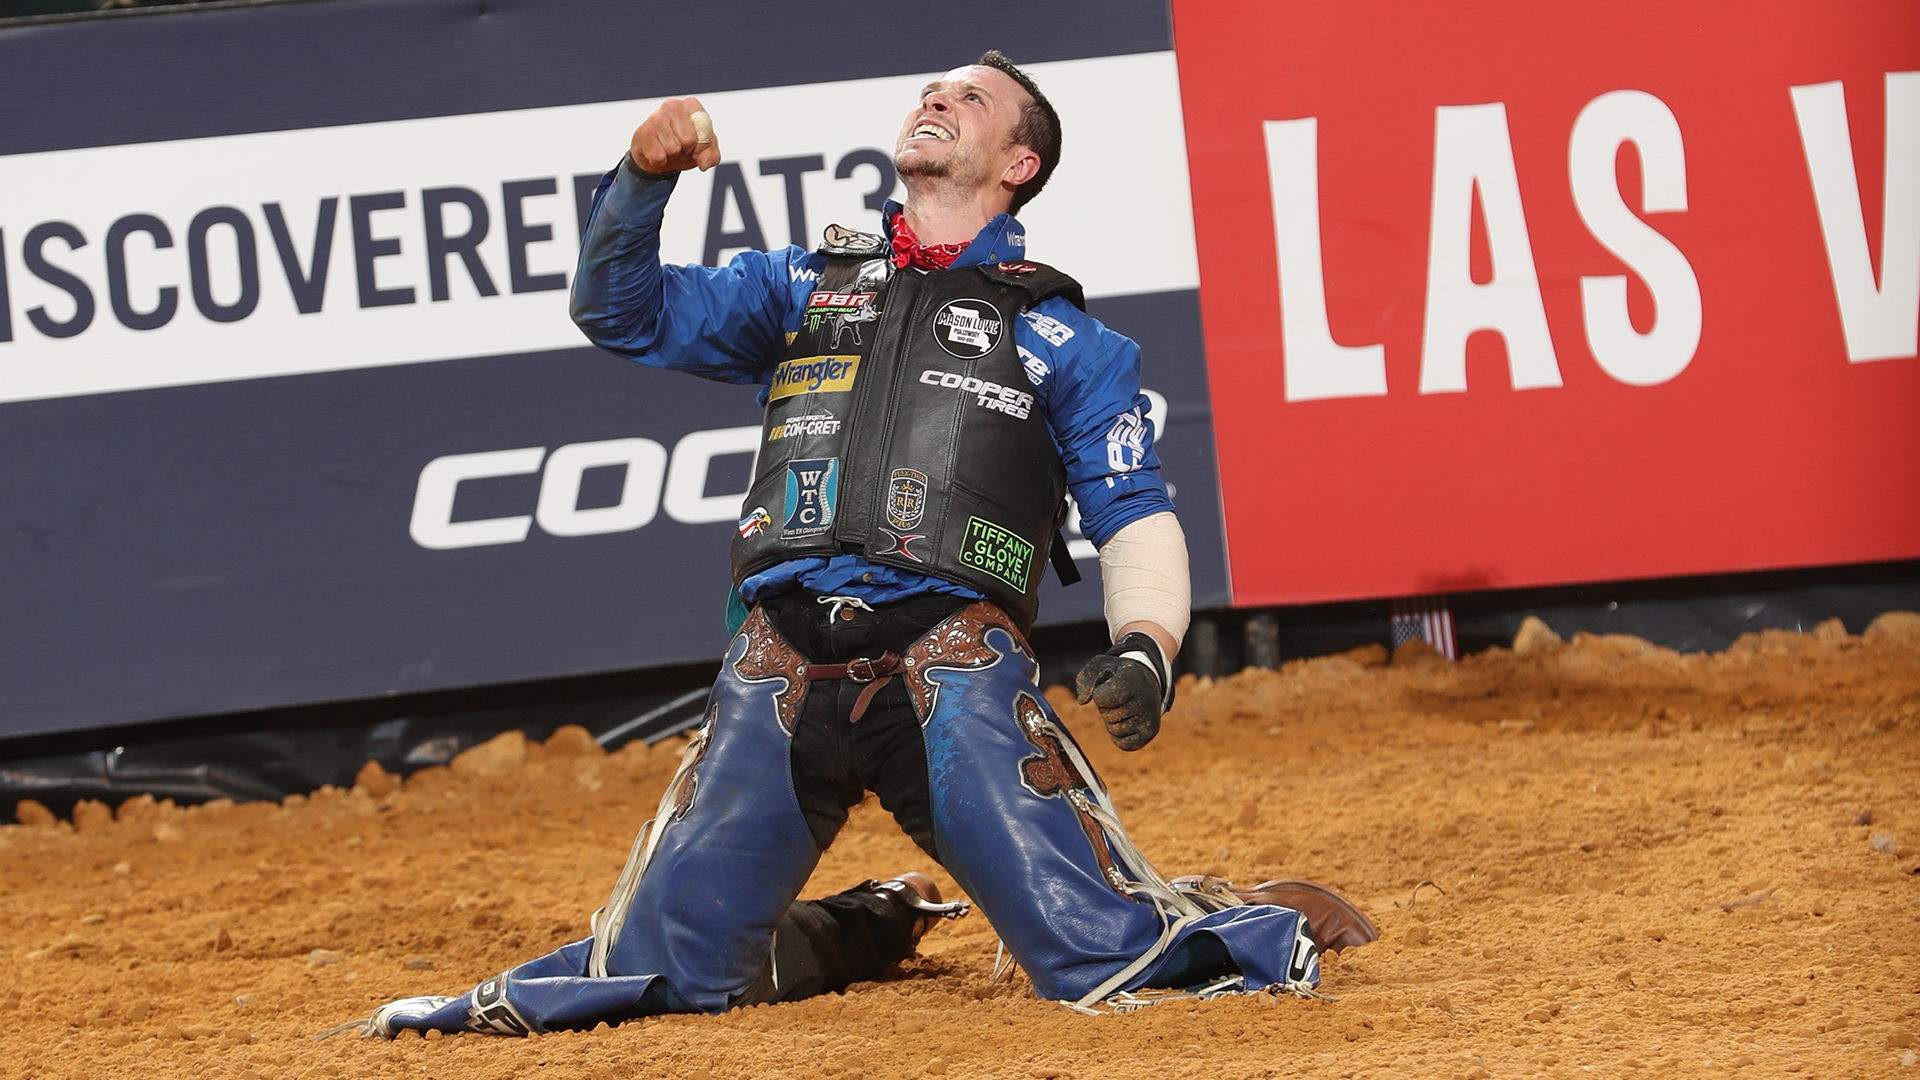 Albuquerque draw: Nance ready to return to 'loudest' building in PBR